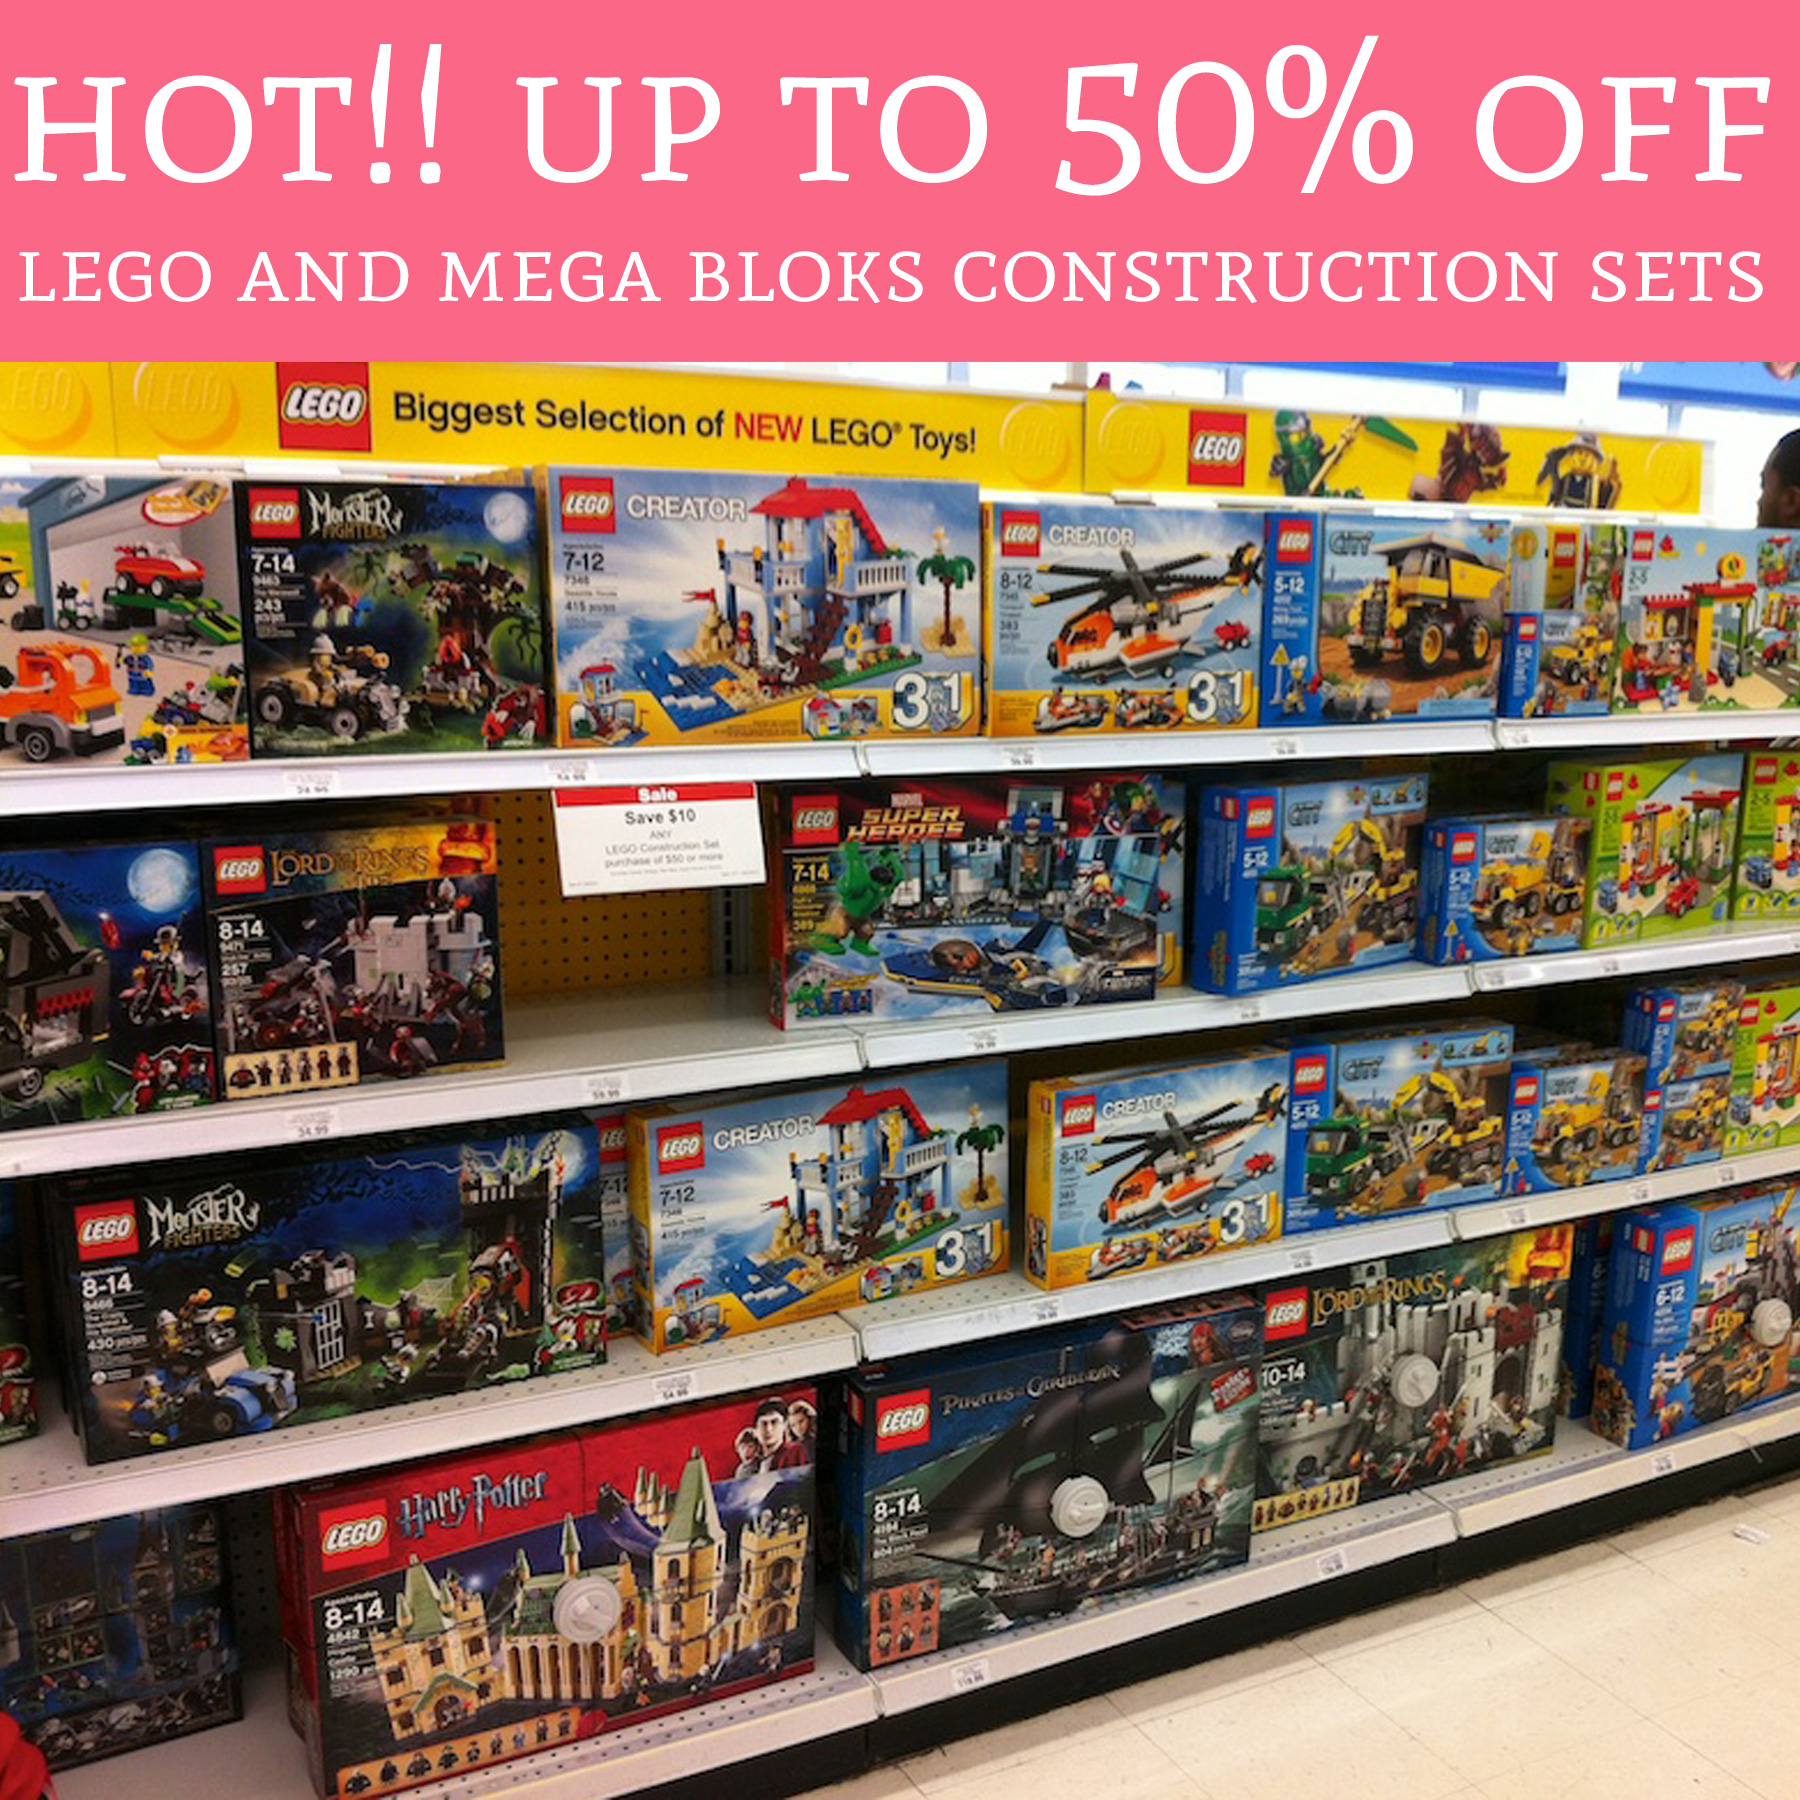 Feb 19, · Valid Sunday 2/19 through Saturday 2/25, Buy One, Get One 50% Off ALL LEGO construction sets and board games. And by ALL, Toys R Us is excluding Friends, Mindstorms and Star ashedplan.gq always, be sure to buy similarly priced sets to maximize your savings.